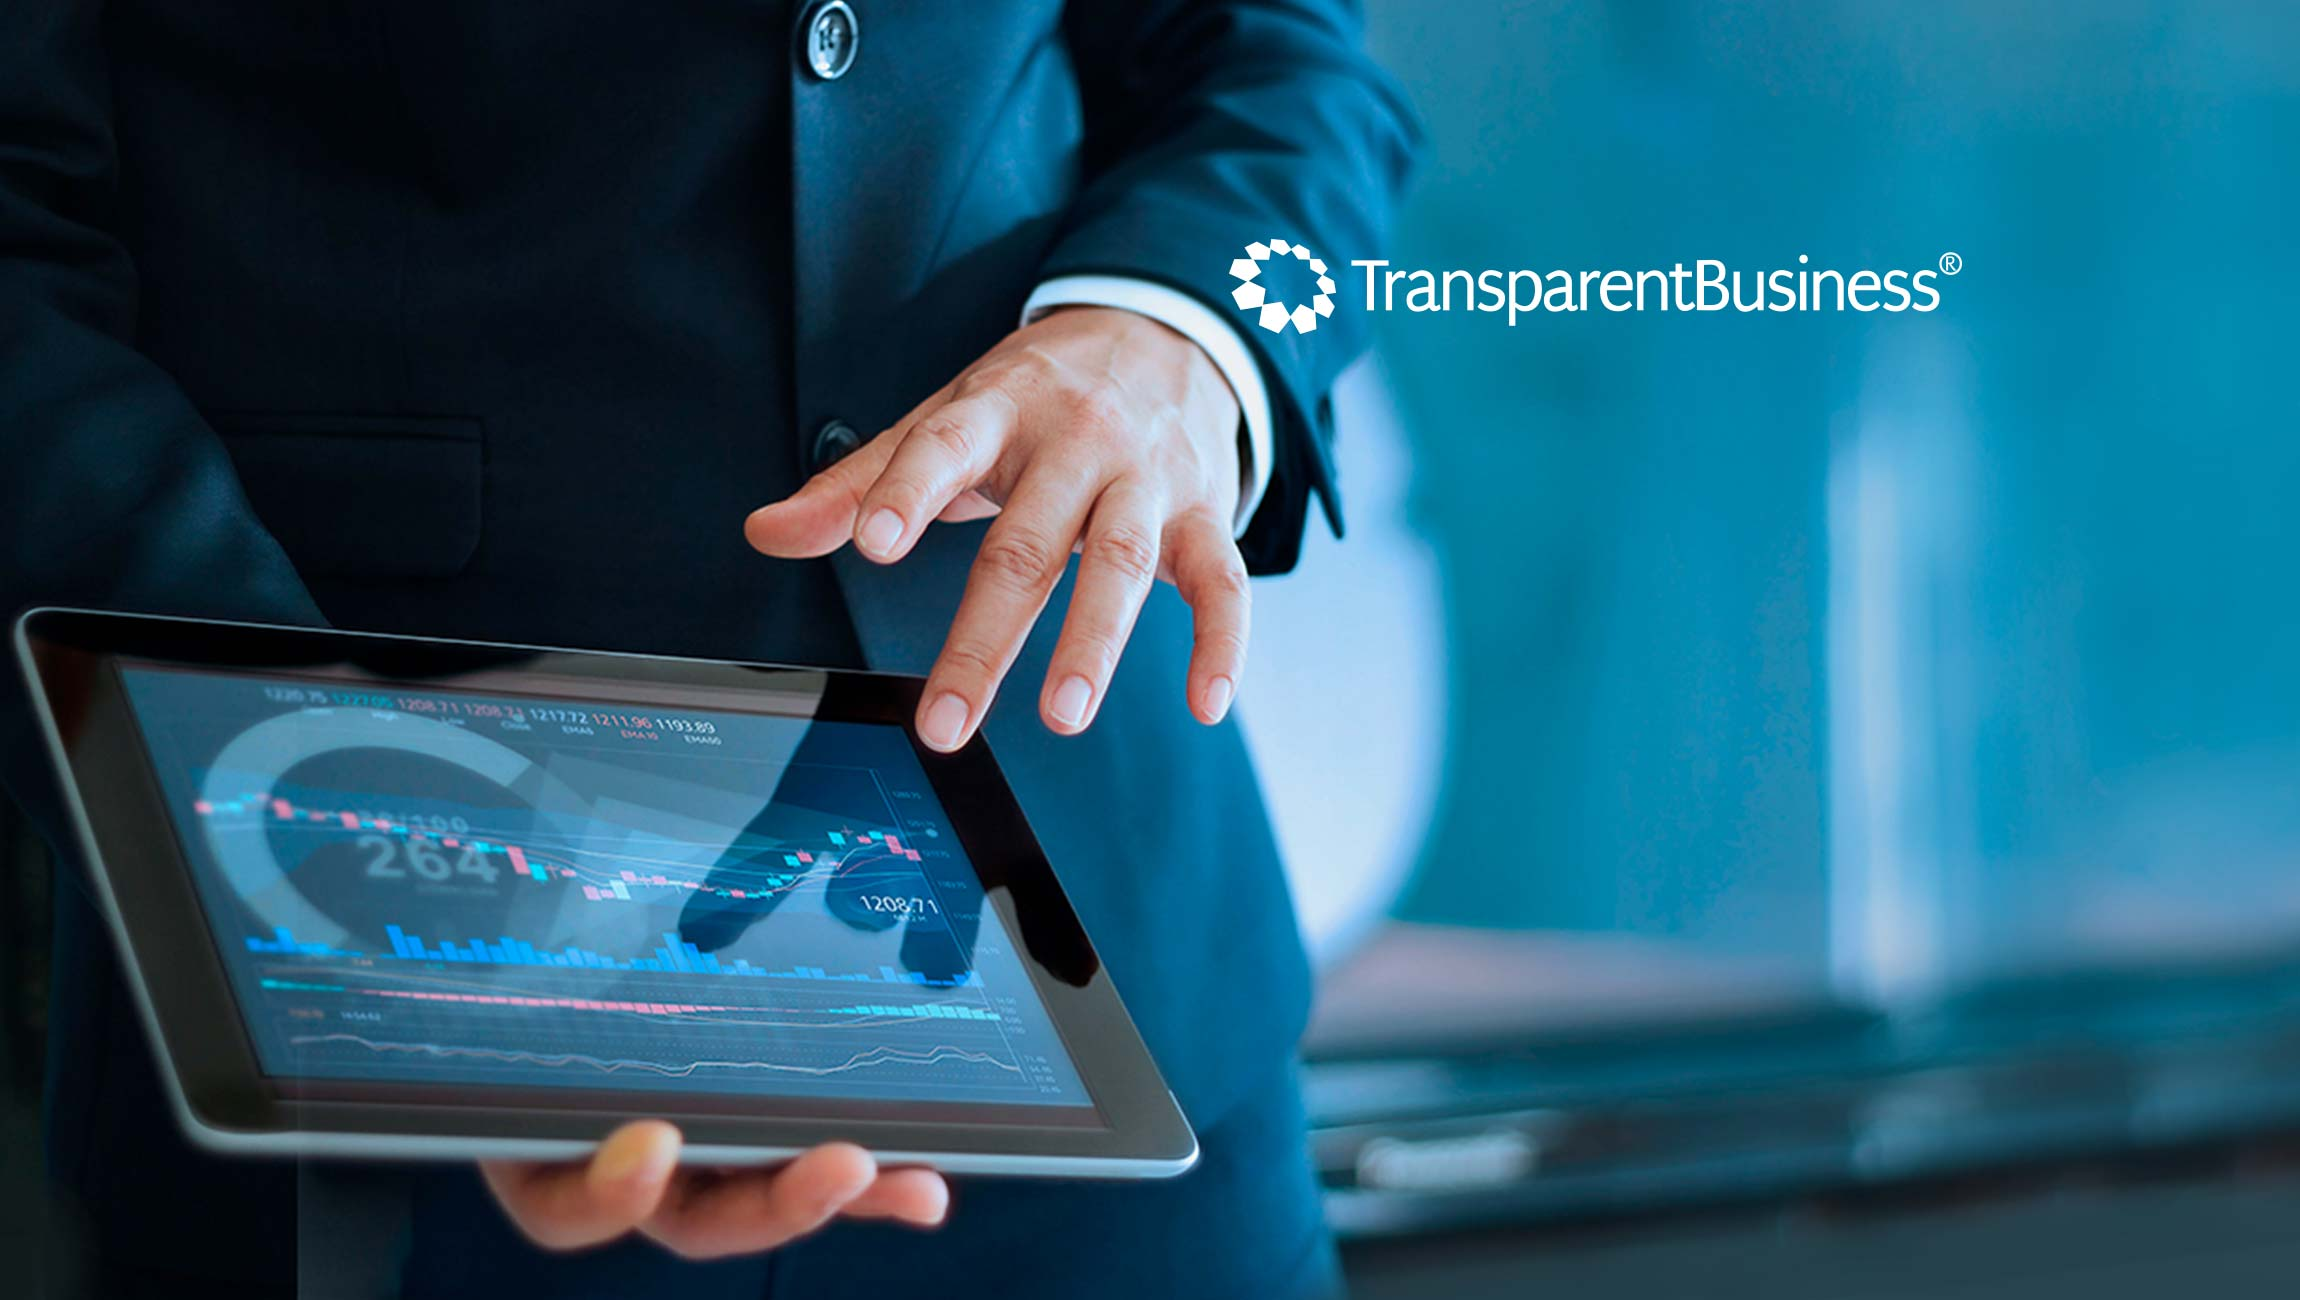 TransparentBusiness